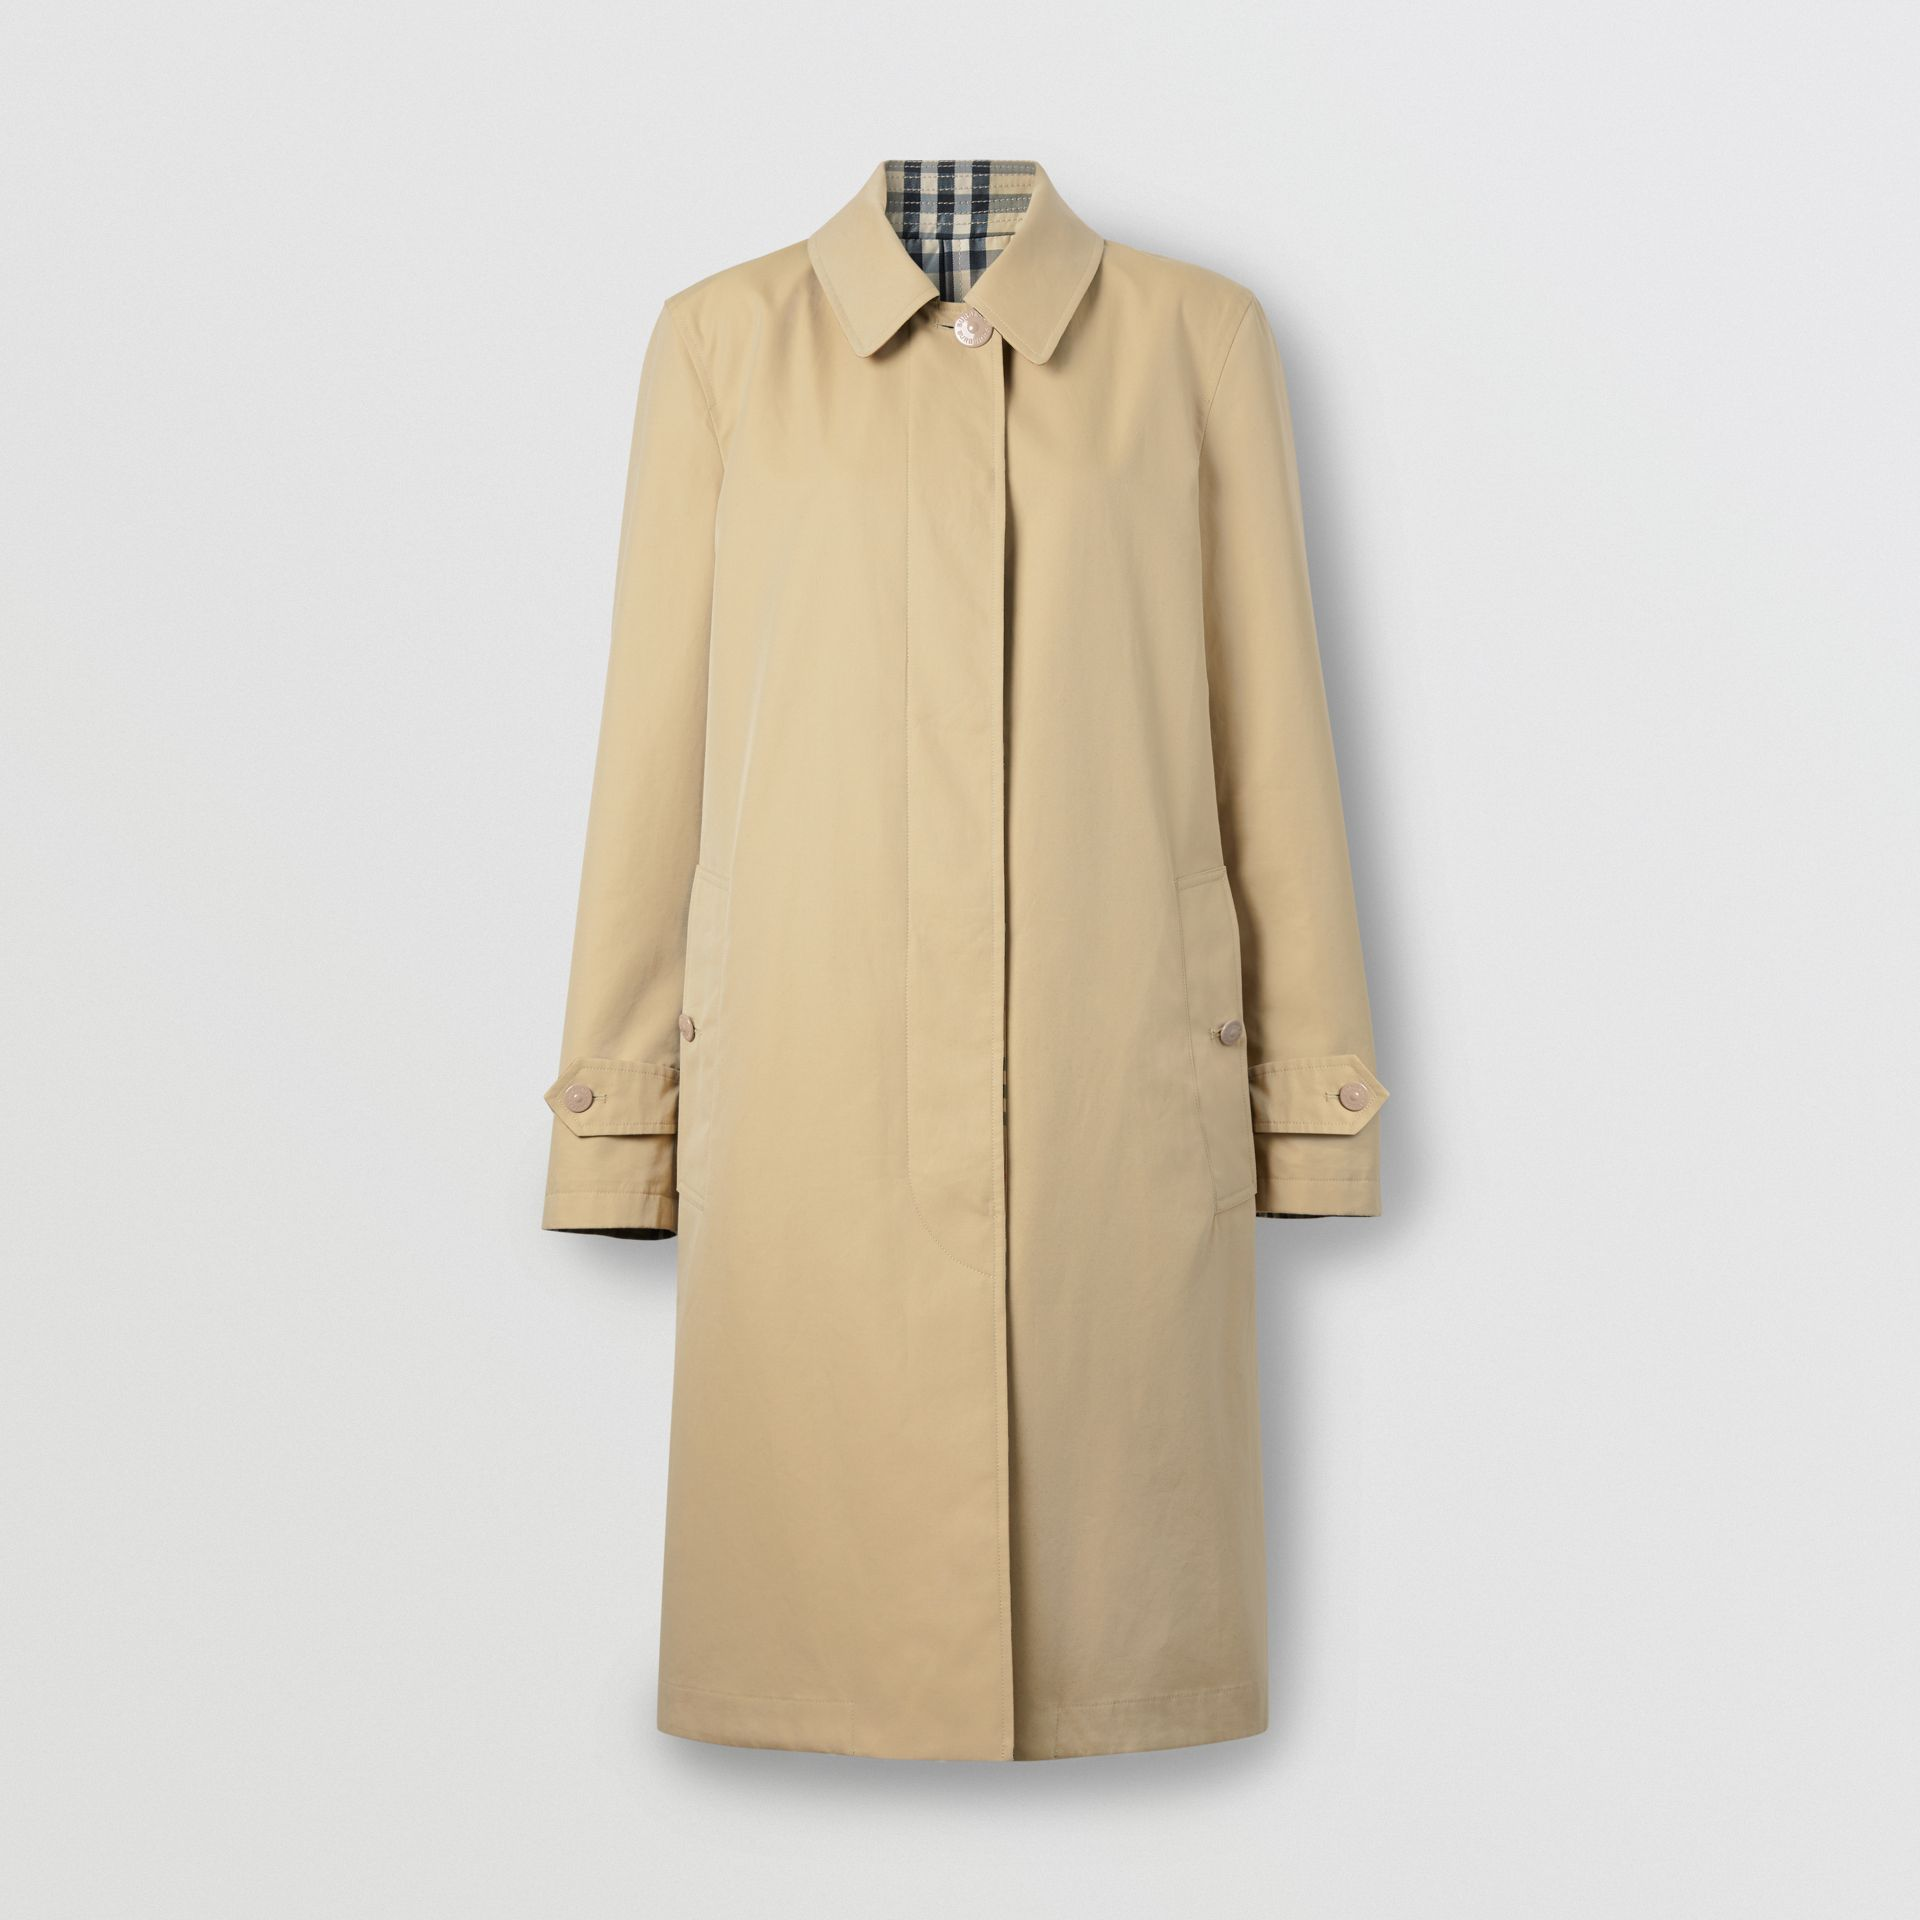 Reversible Cotton and Recycled Polyester Car Coat in Honey - Women | Burberry United Kingdom - gallery image 3